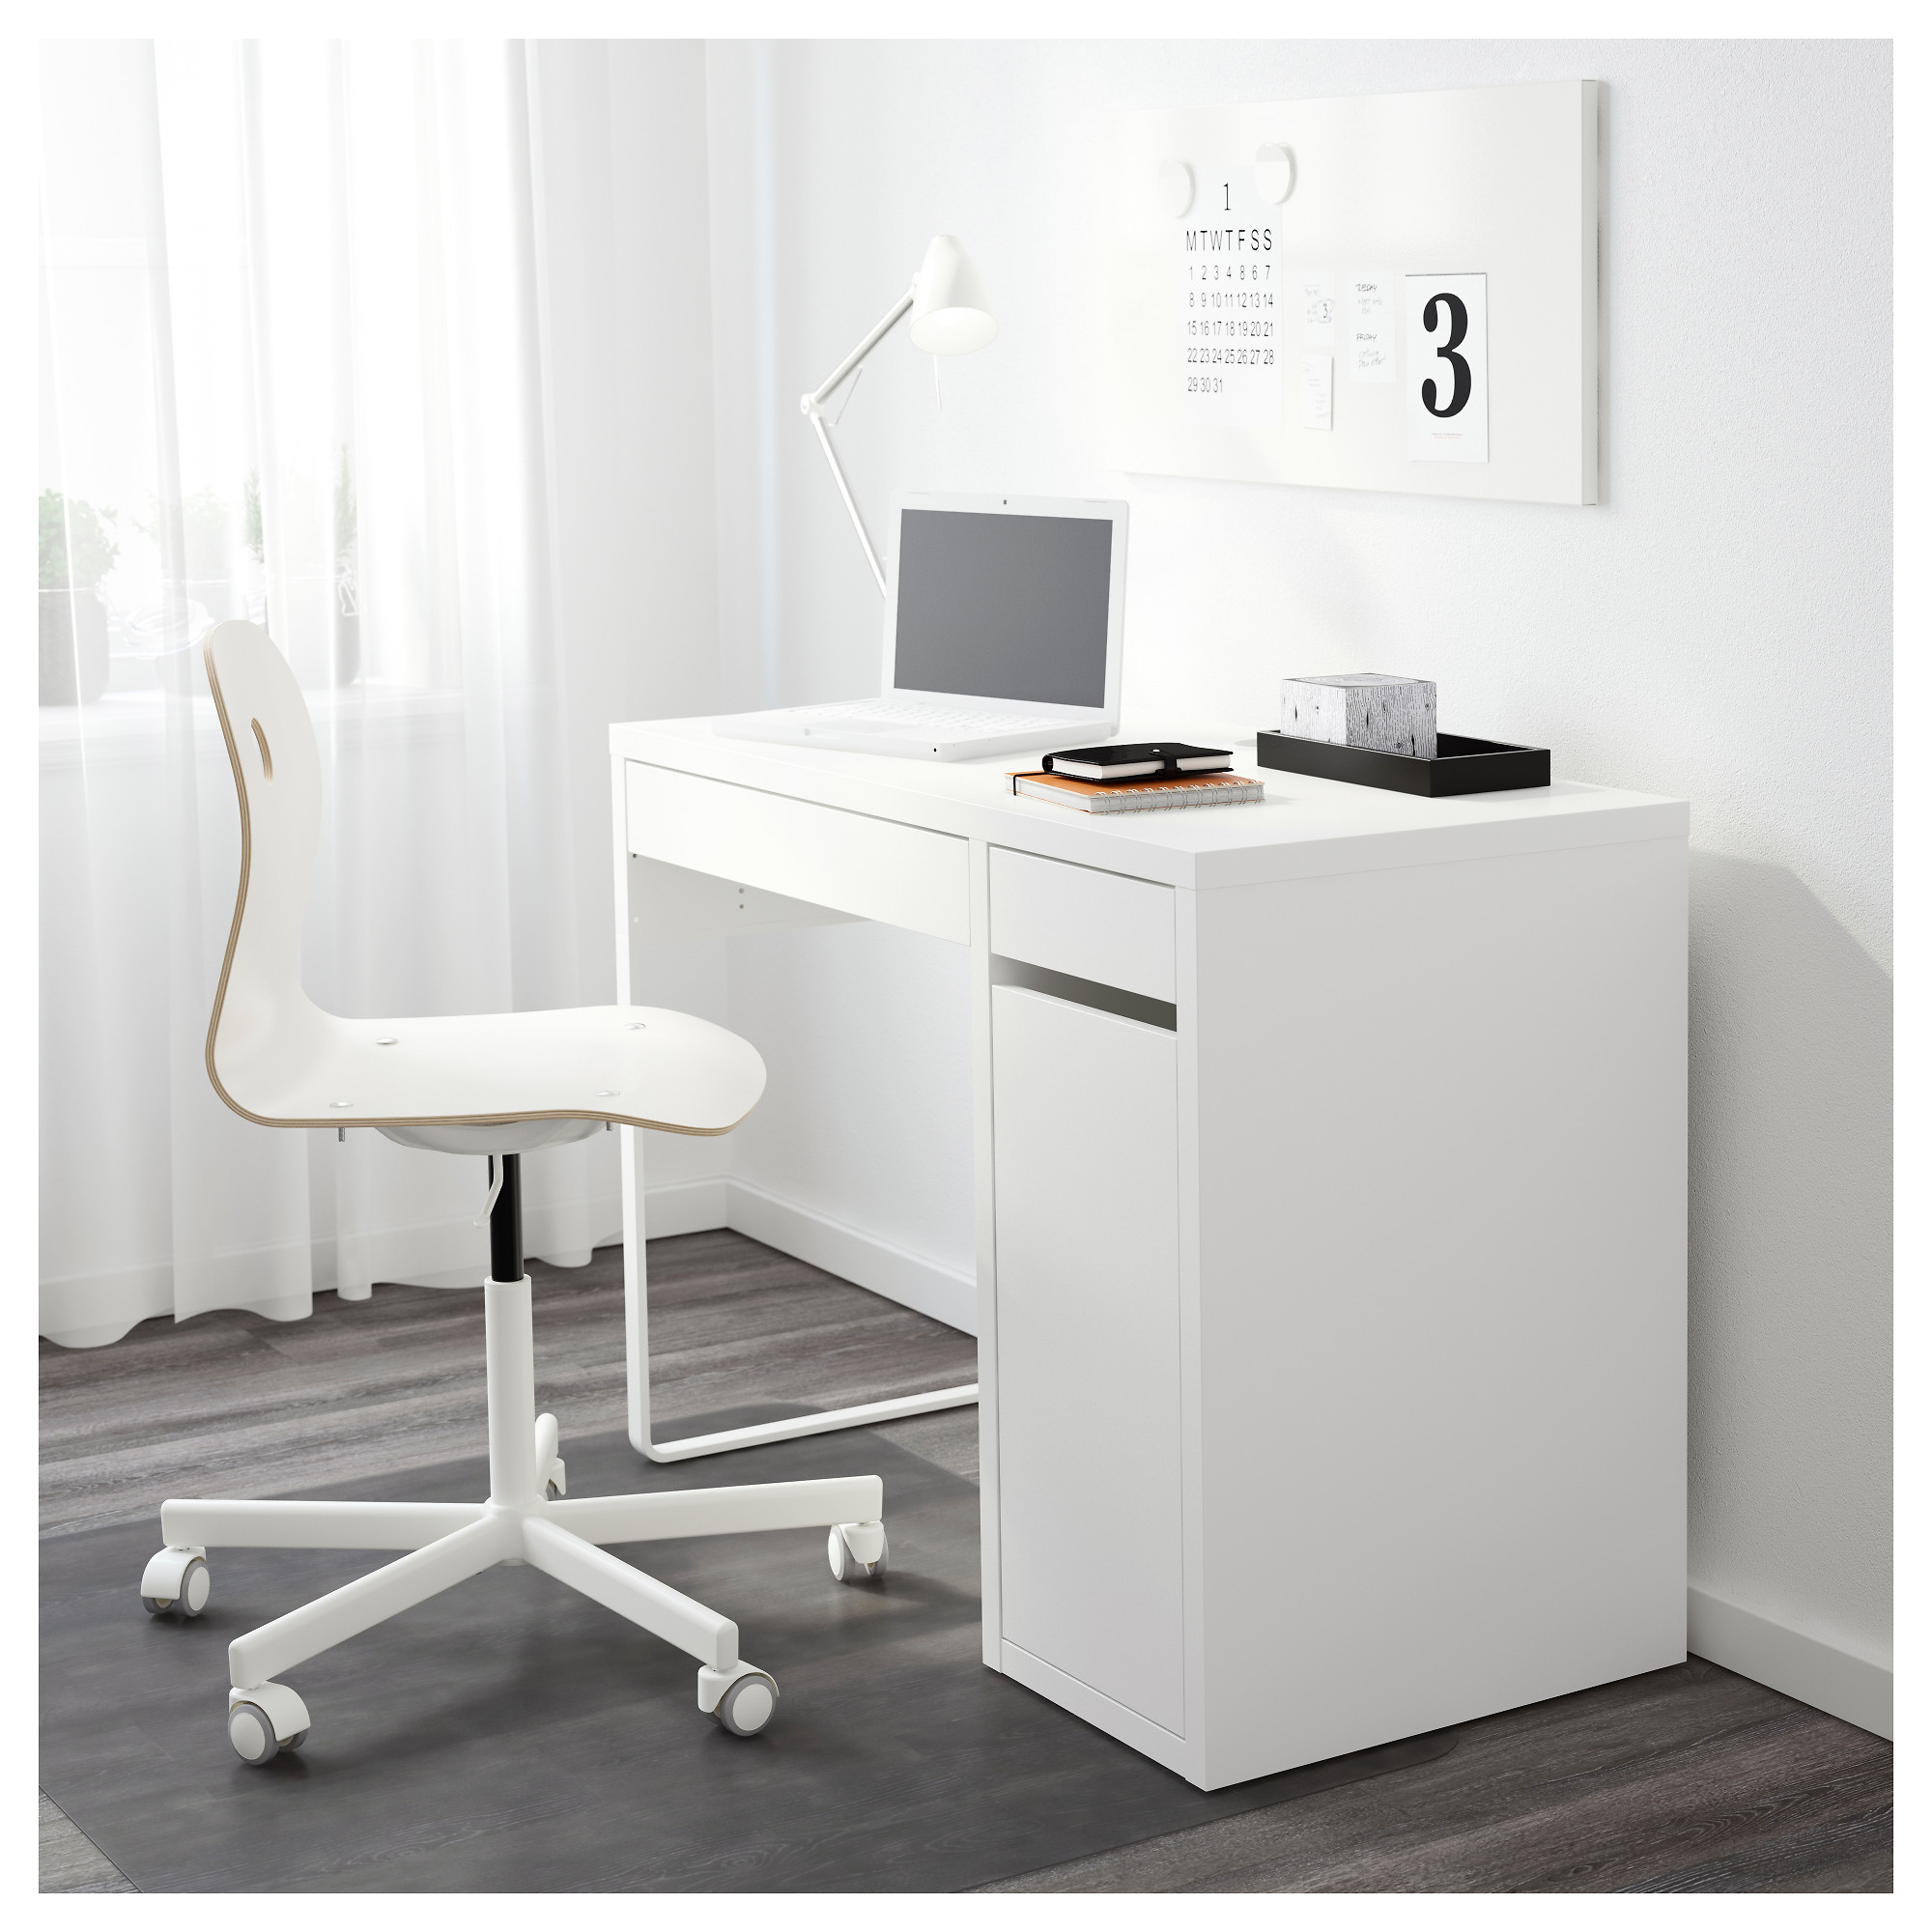 Self Assemble Furniture micke desk - white - ikea